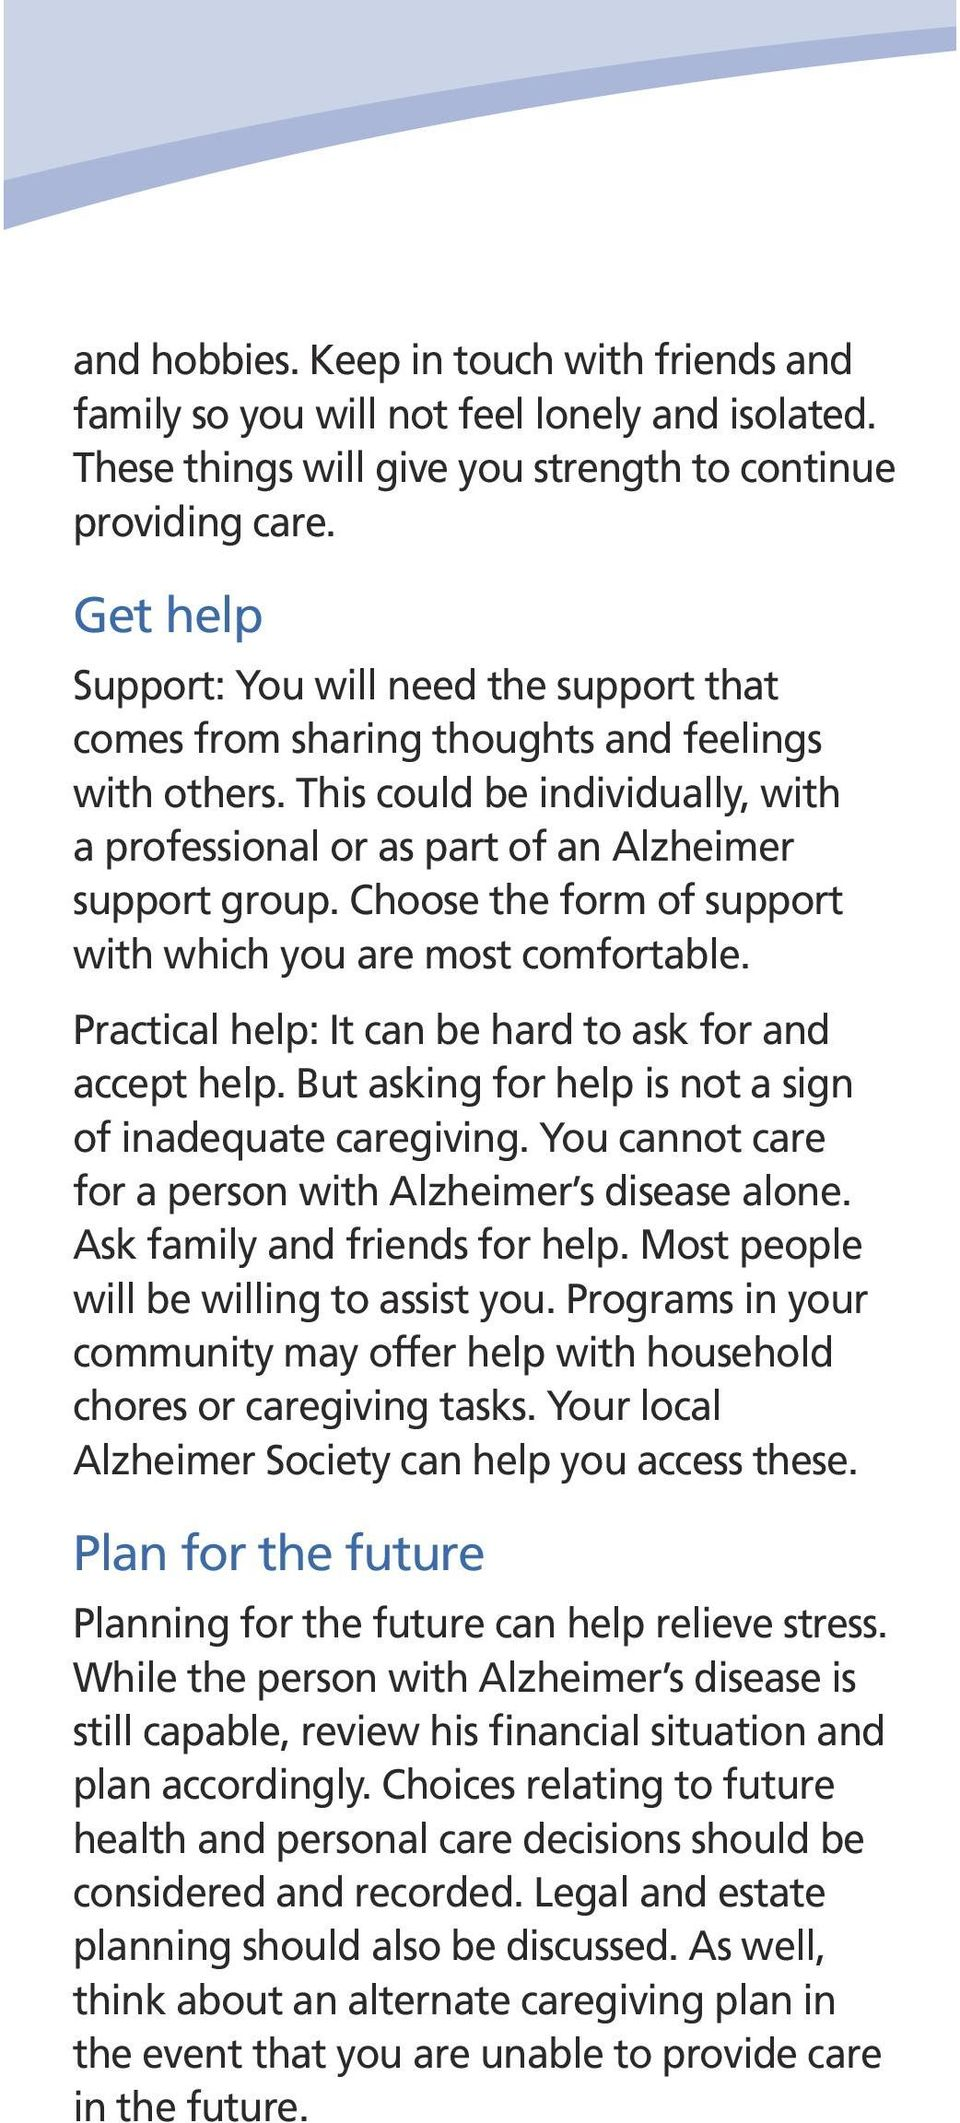 Choose the form of support with which you are most comfortable. Practical help: It can be hard to ask for and accept help. But asking for help is not a sign of inadequate caregiving.